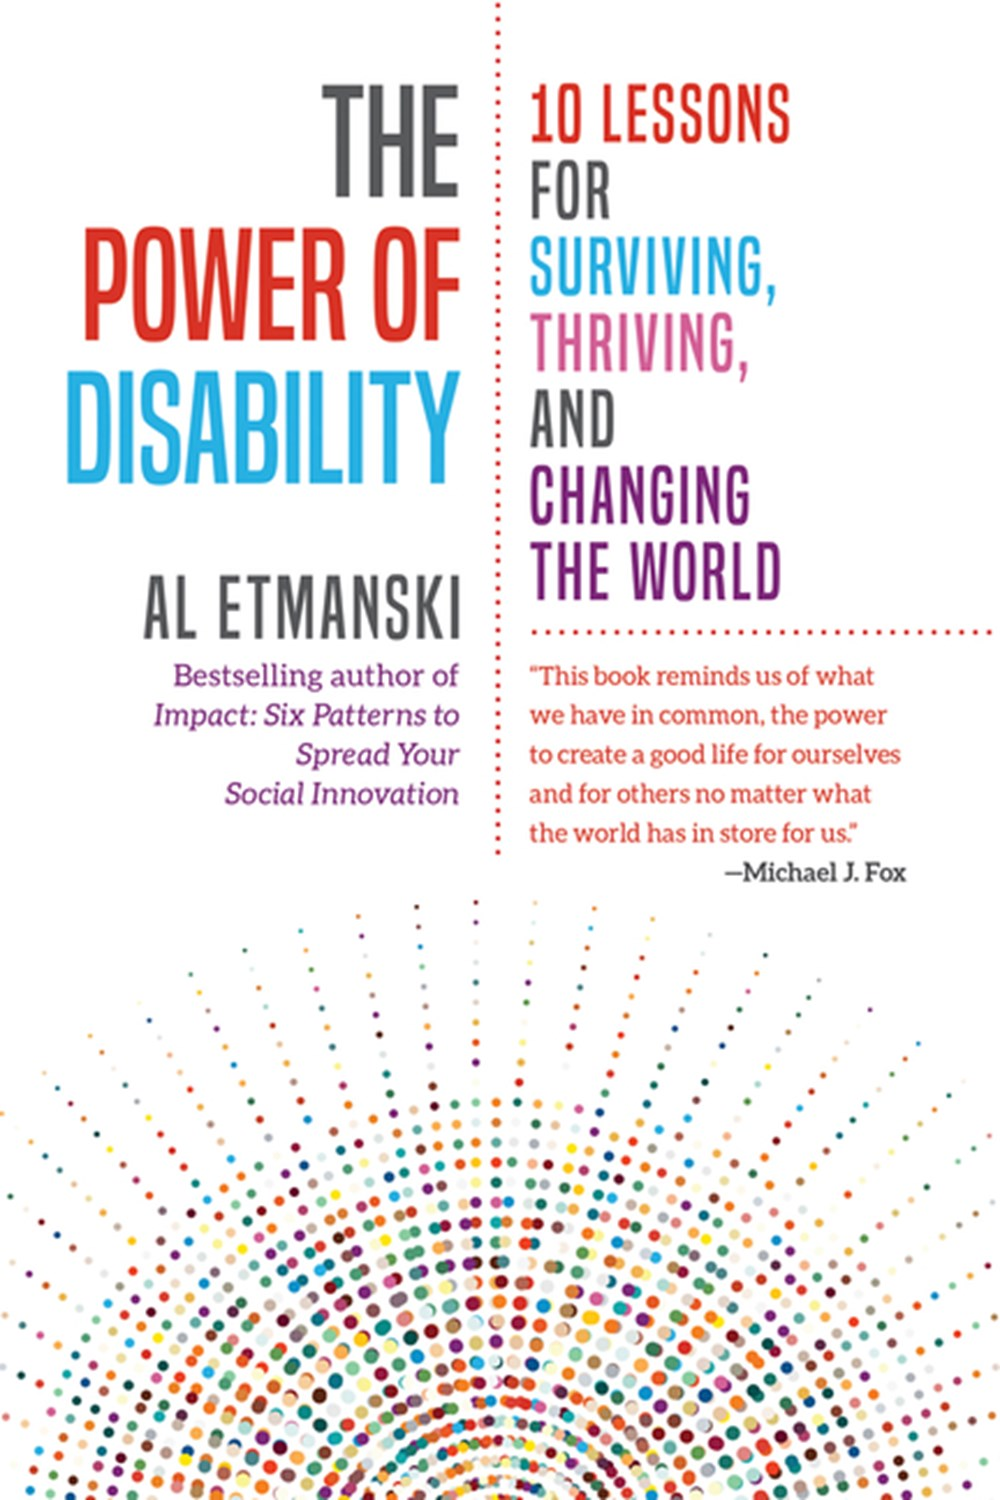 Power of Disability: 10 Lessons for Surviving, Thriving, and Changing the World